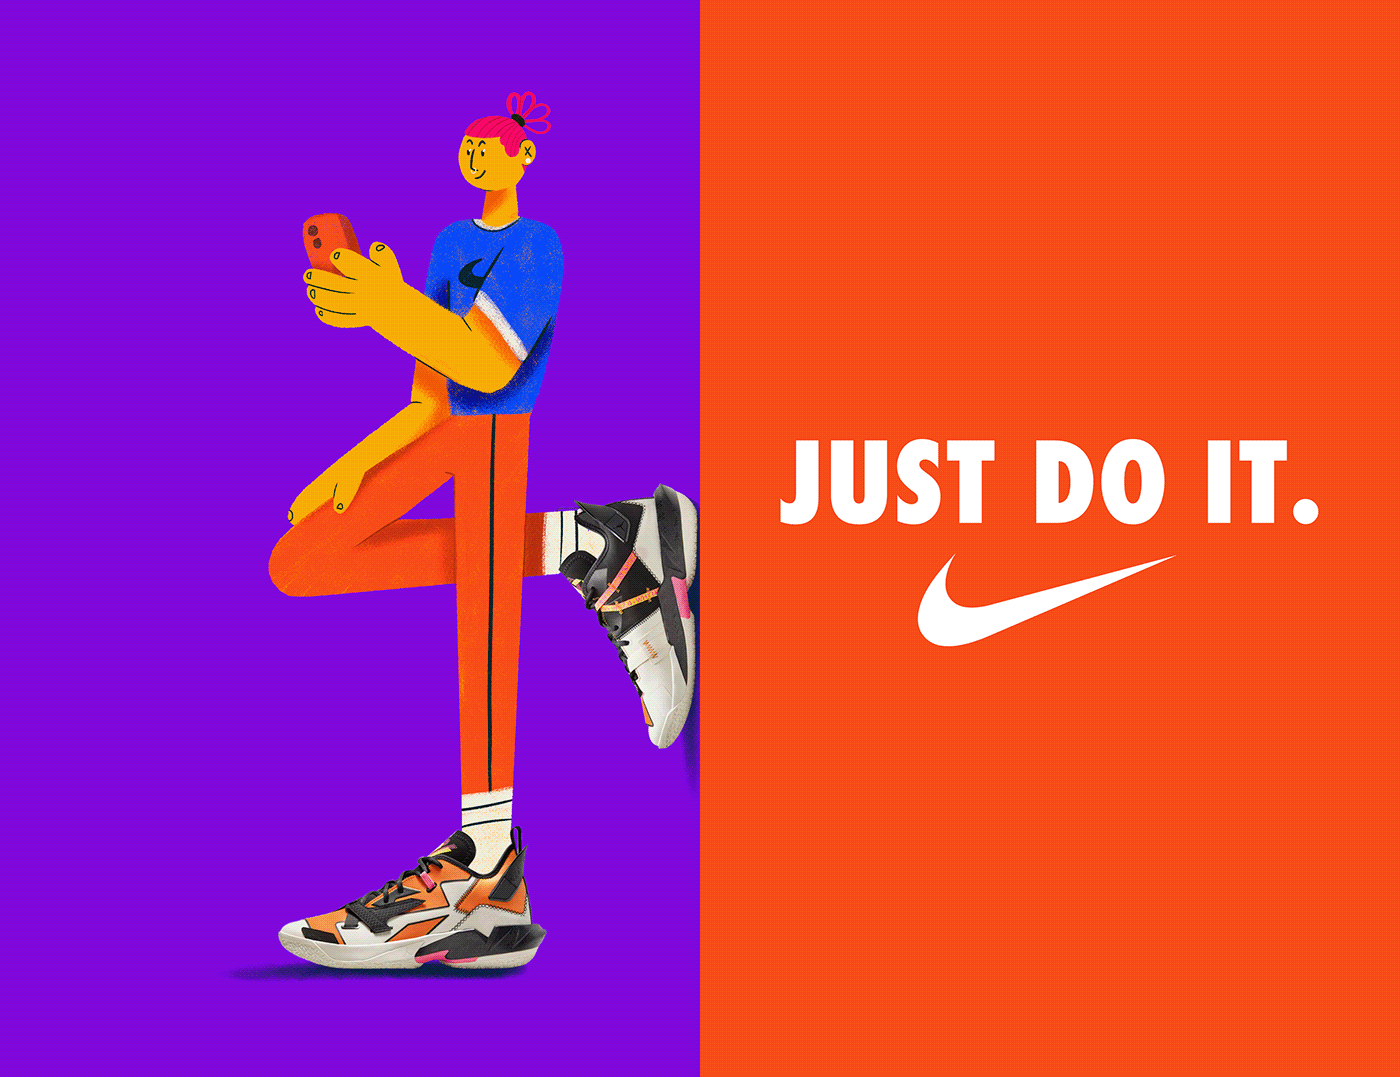 campaign characters creative design inspiration Nike shoes snkrs